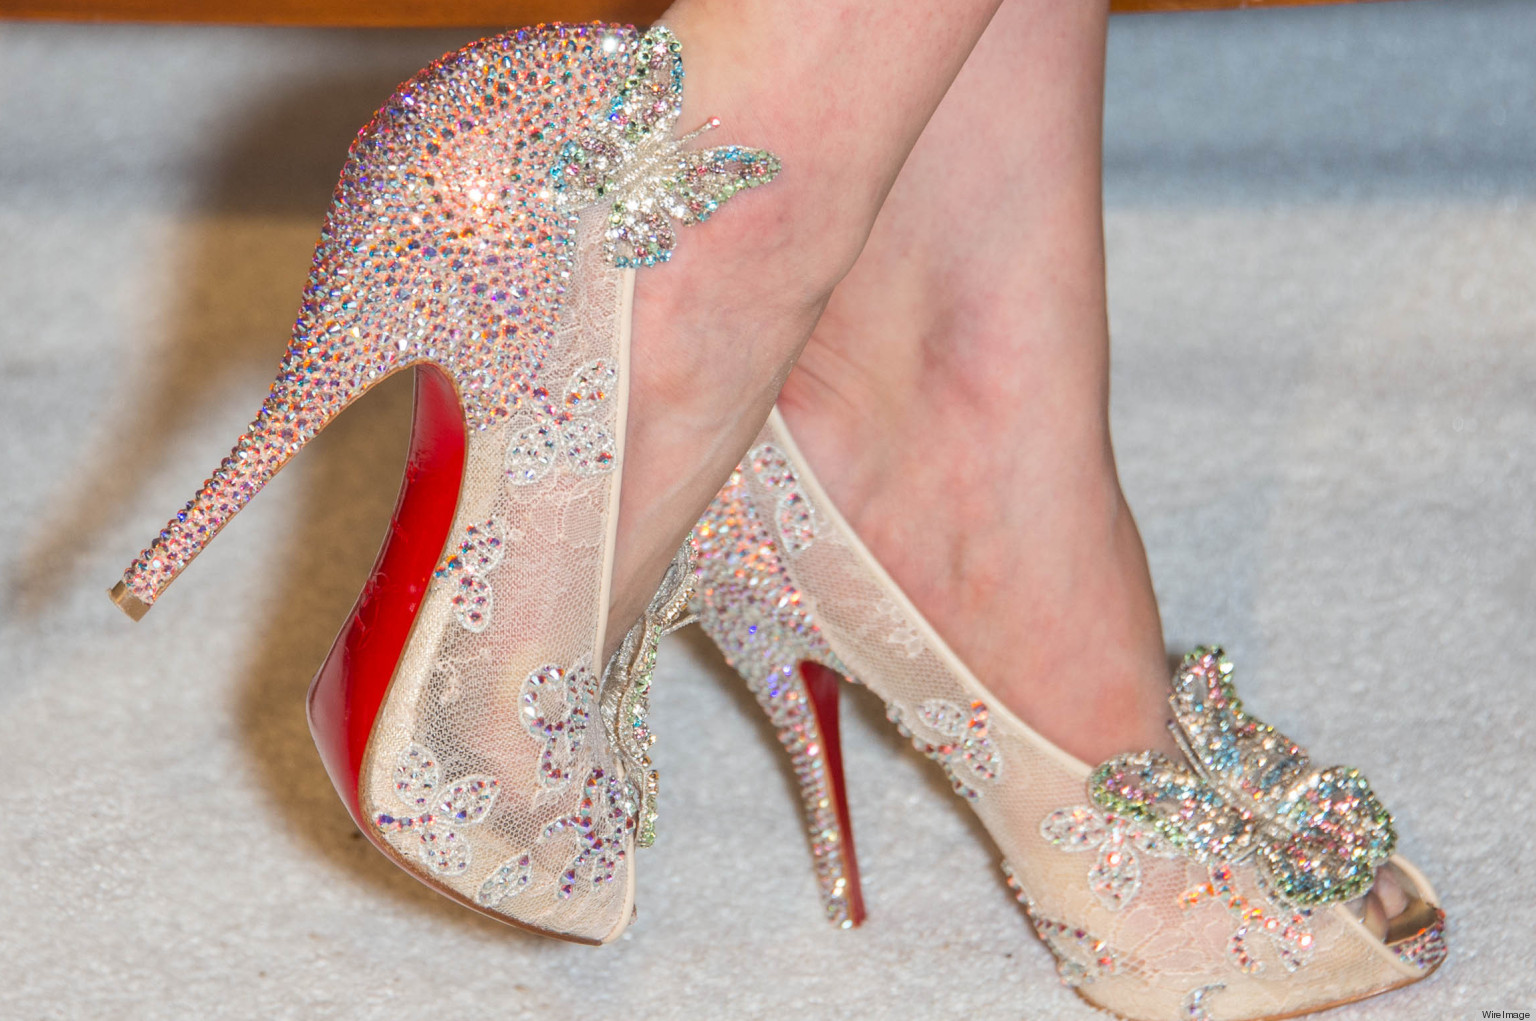 Christian Louboutin Vs. YSL U0027Red Solesu0027 Lawsuit Finally Dismissed | HuffPost